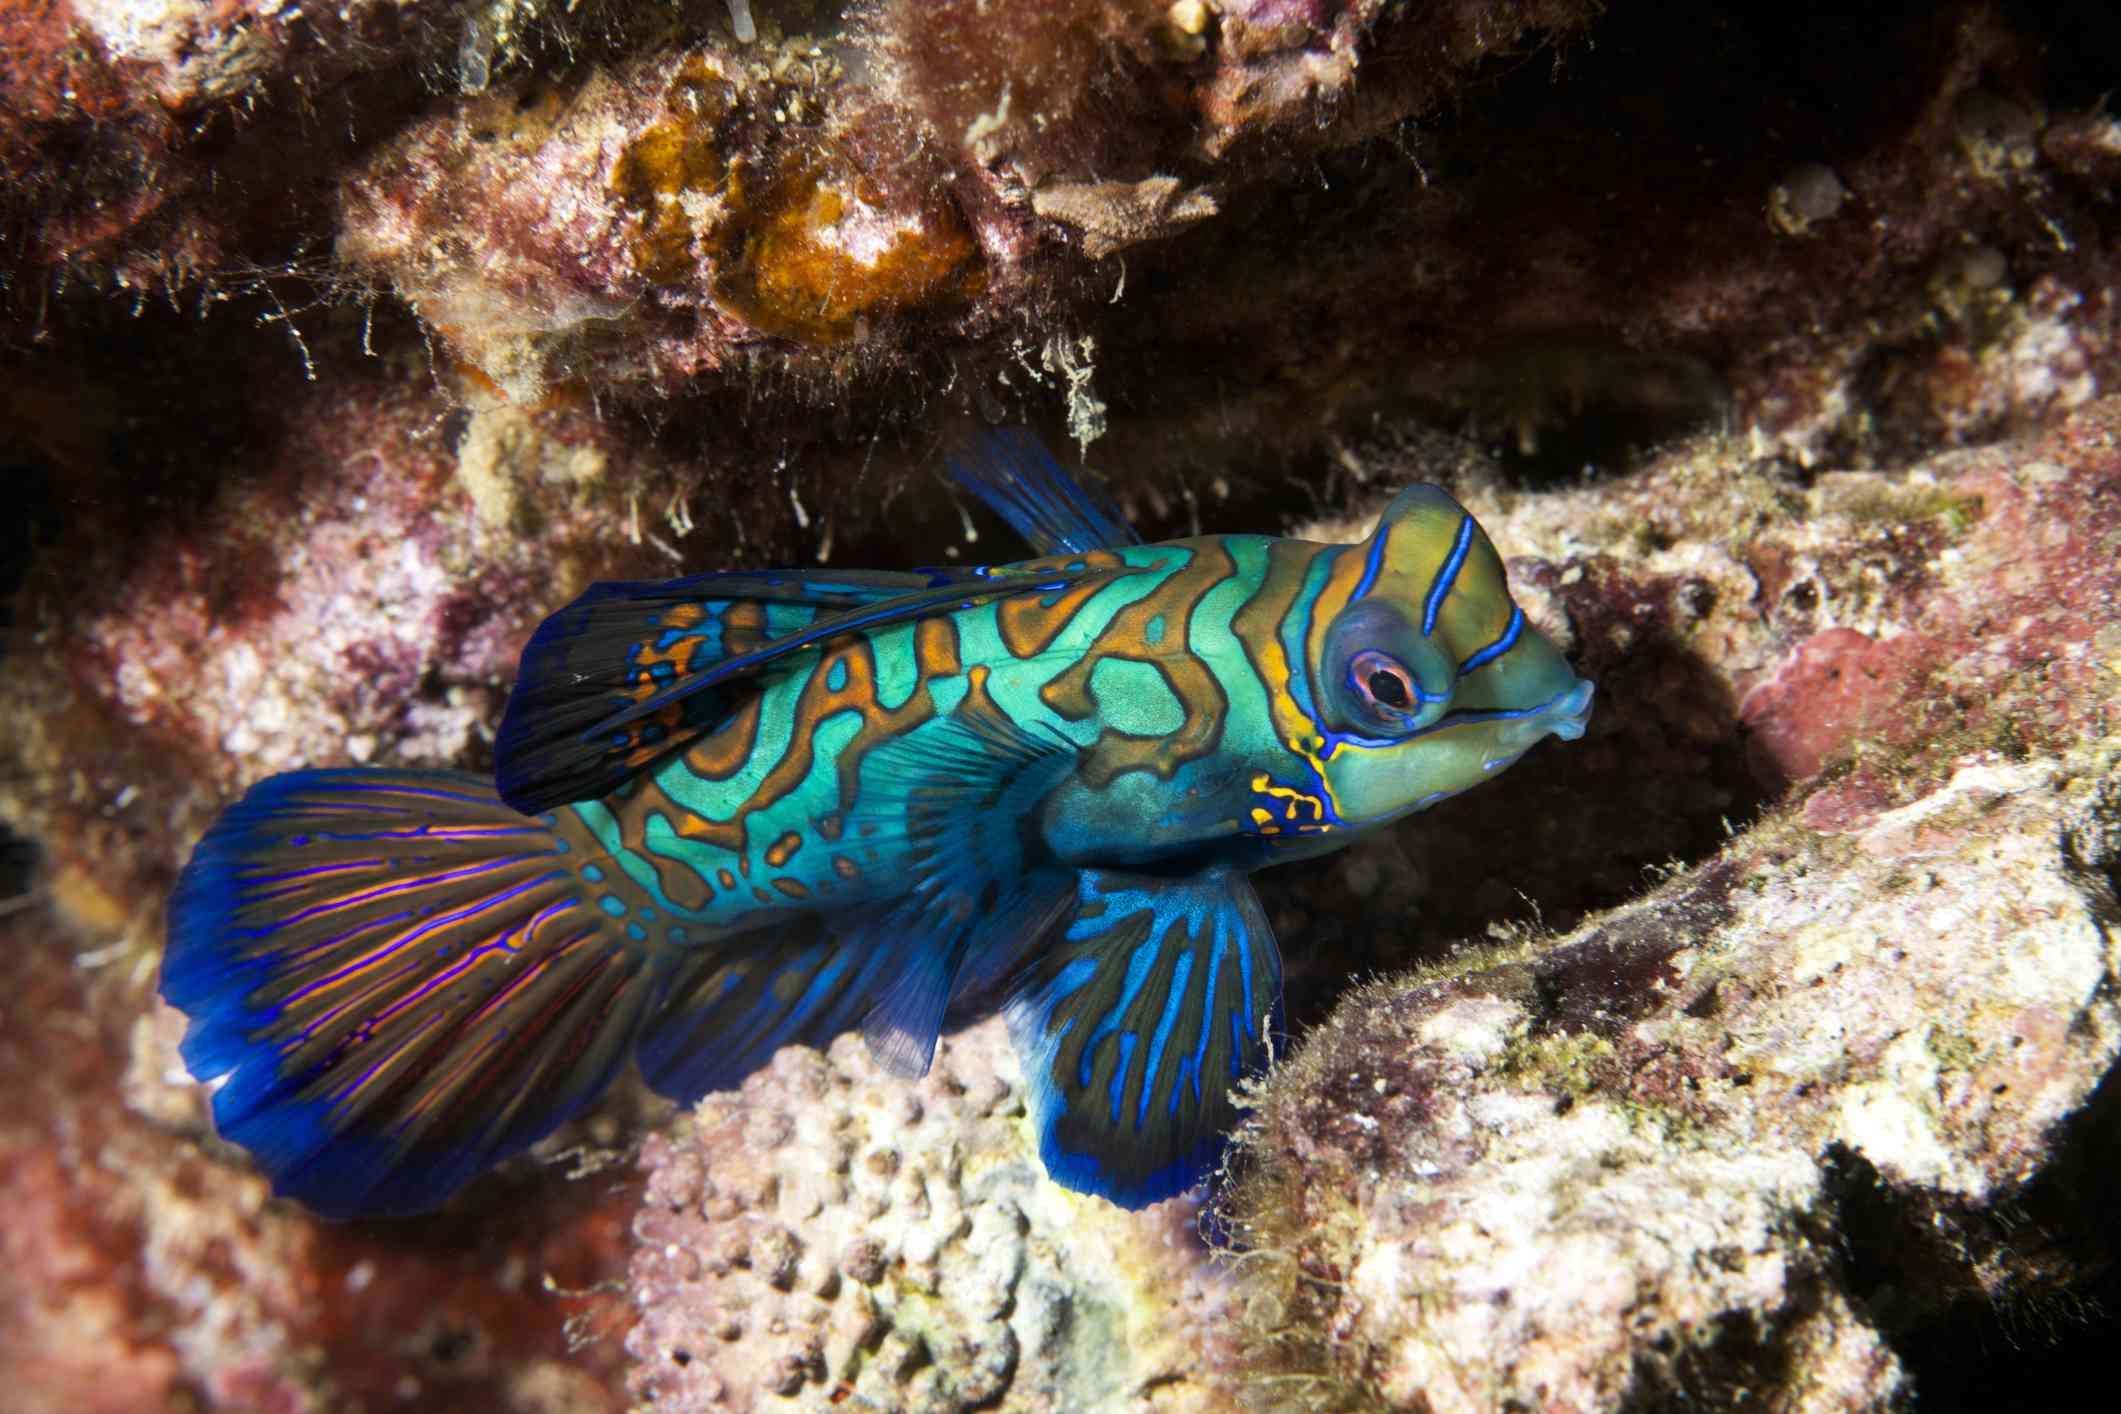 A bright blue, green, and gold Mandarinfish on an algae-covered reef